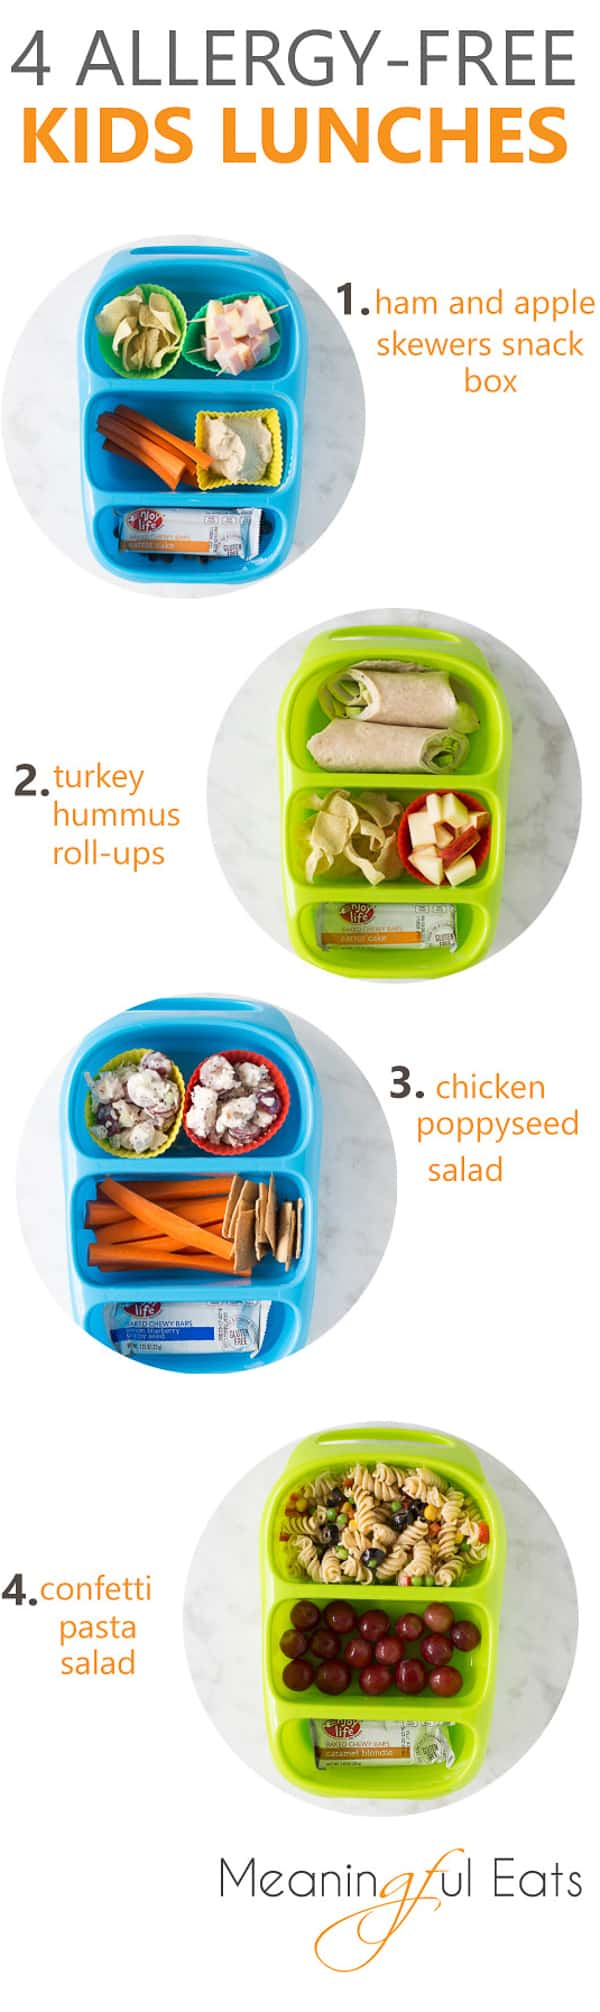 4 Allergy-Free Lunches! Easy, kid-friendly ideas that are all gluten/dairy/egg/soy/nut-free.